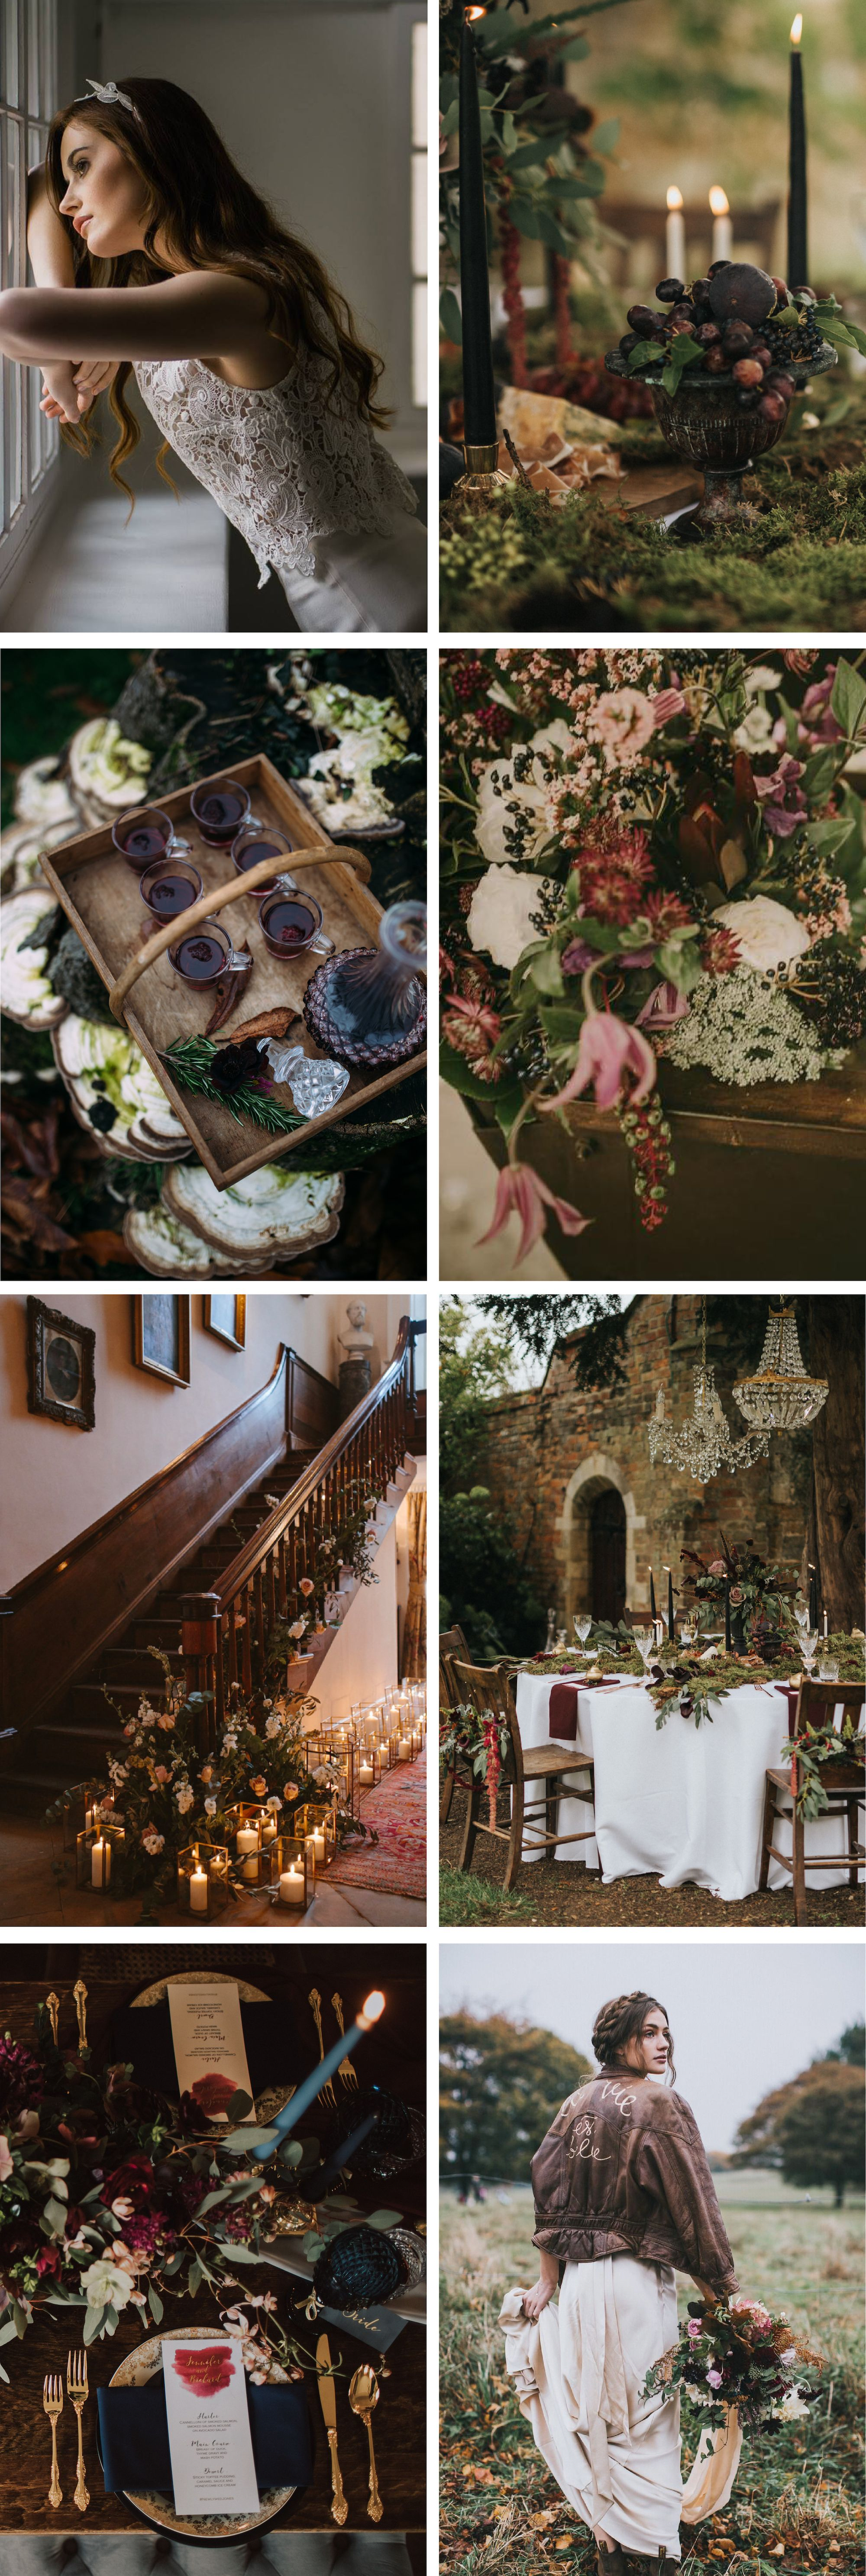 Wedding decorations themes ideas october 2018 Jewel Tone and Gold Autumn Wedding Inspiration The Love Lust List in